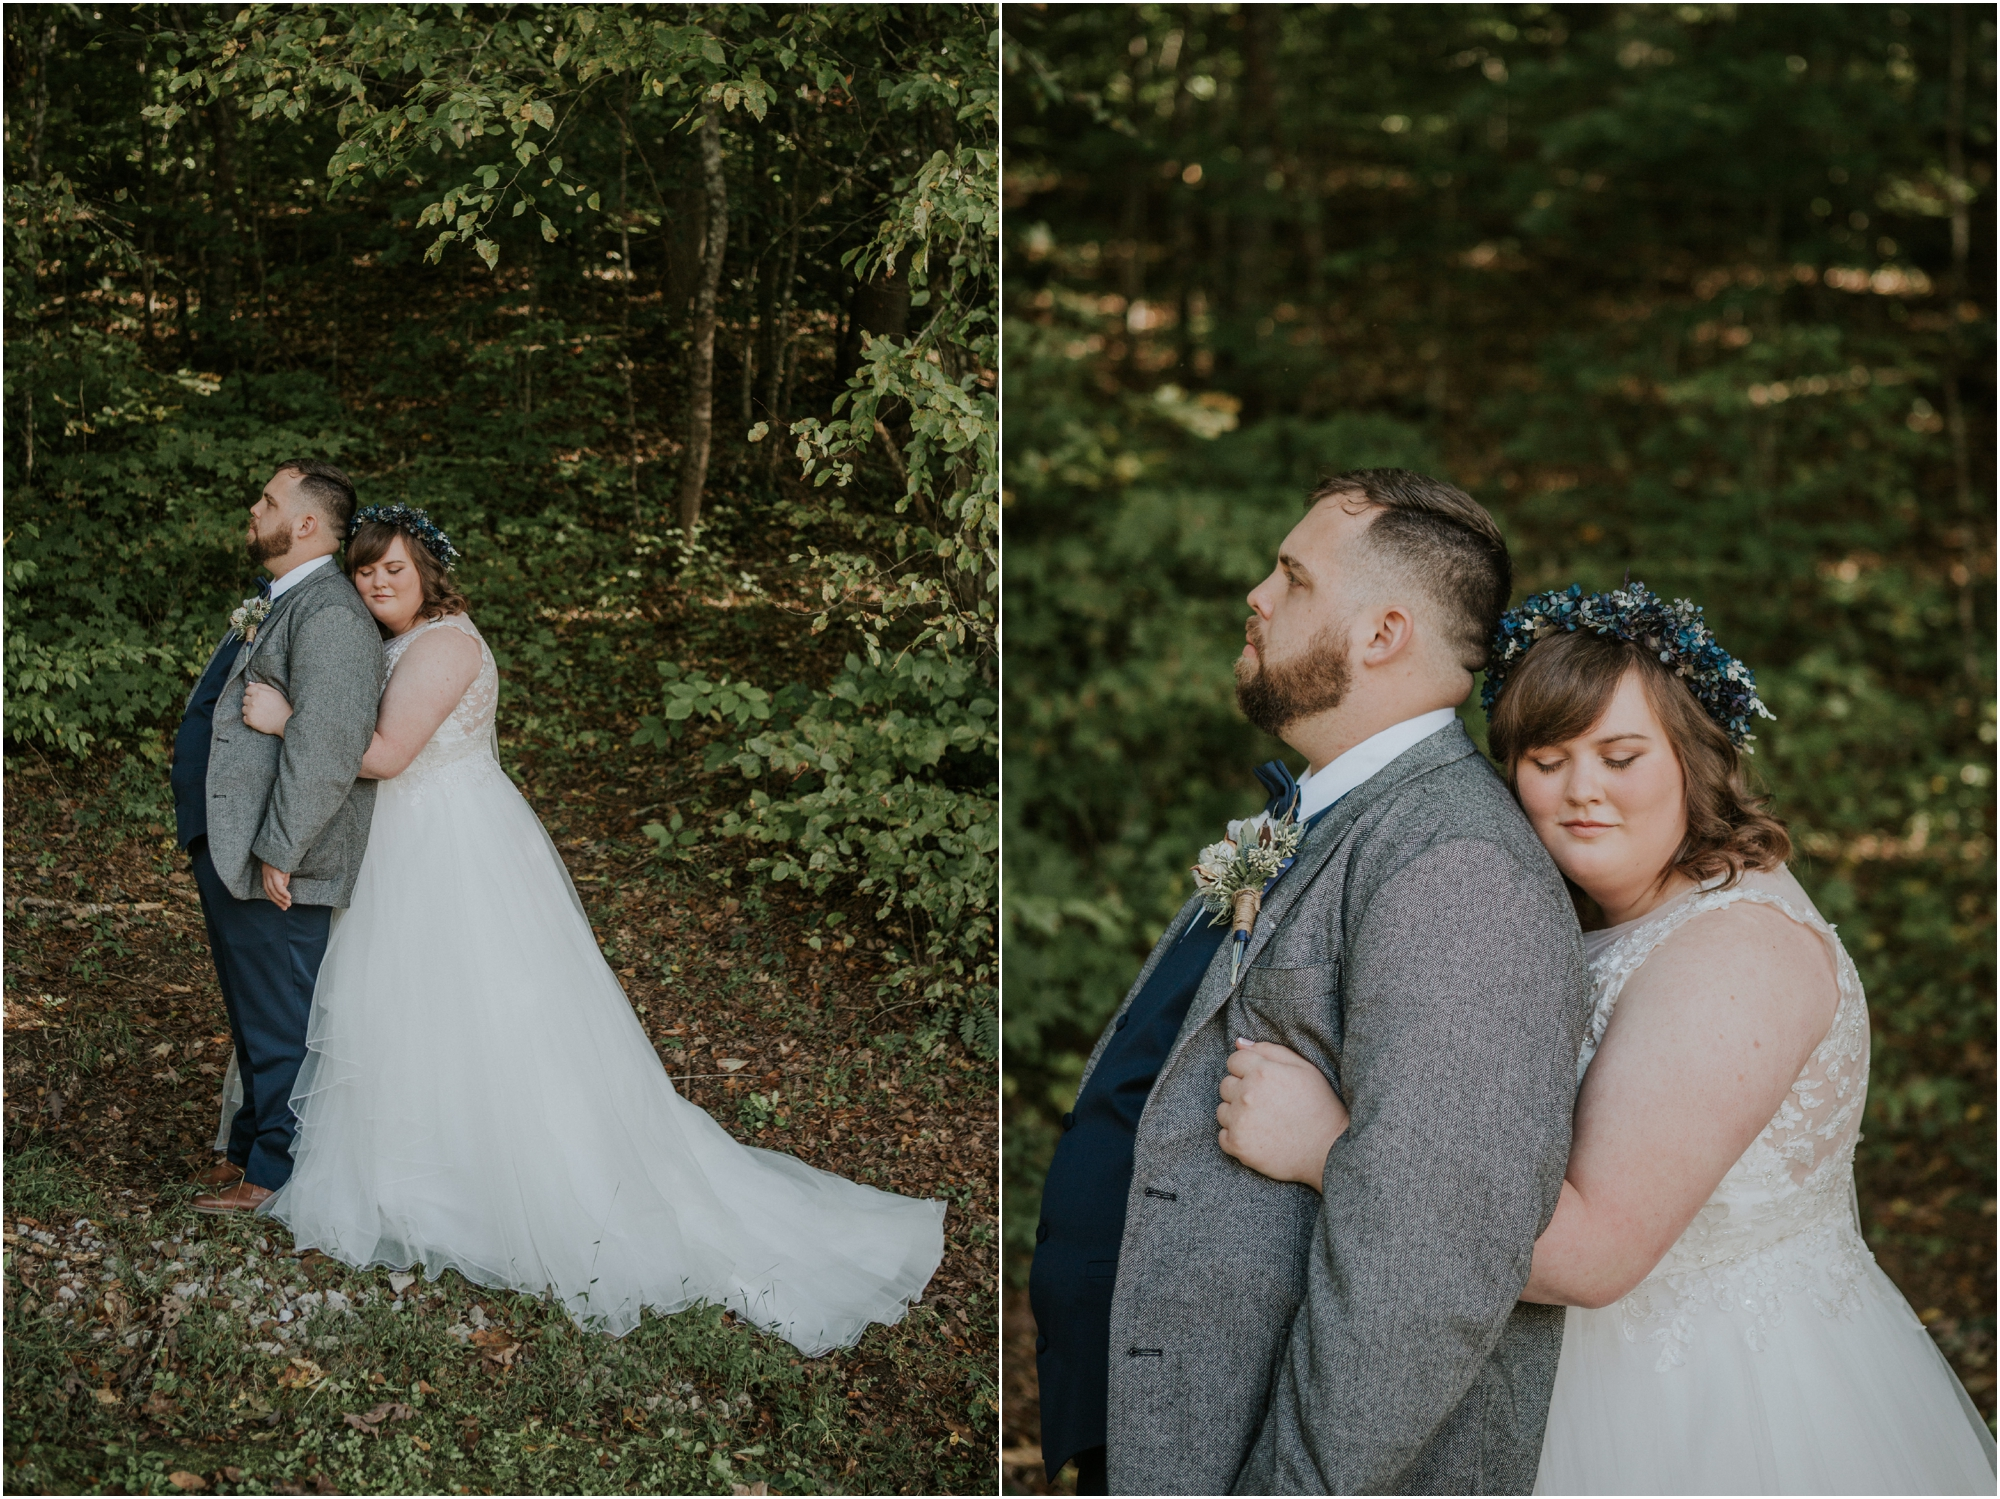 caryville-robbins-middle-tennessee-intimate-cozy-fall-navy-rustic-backyard-wedding_0052.jpg